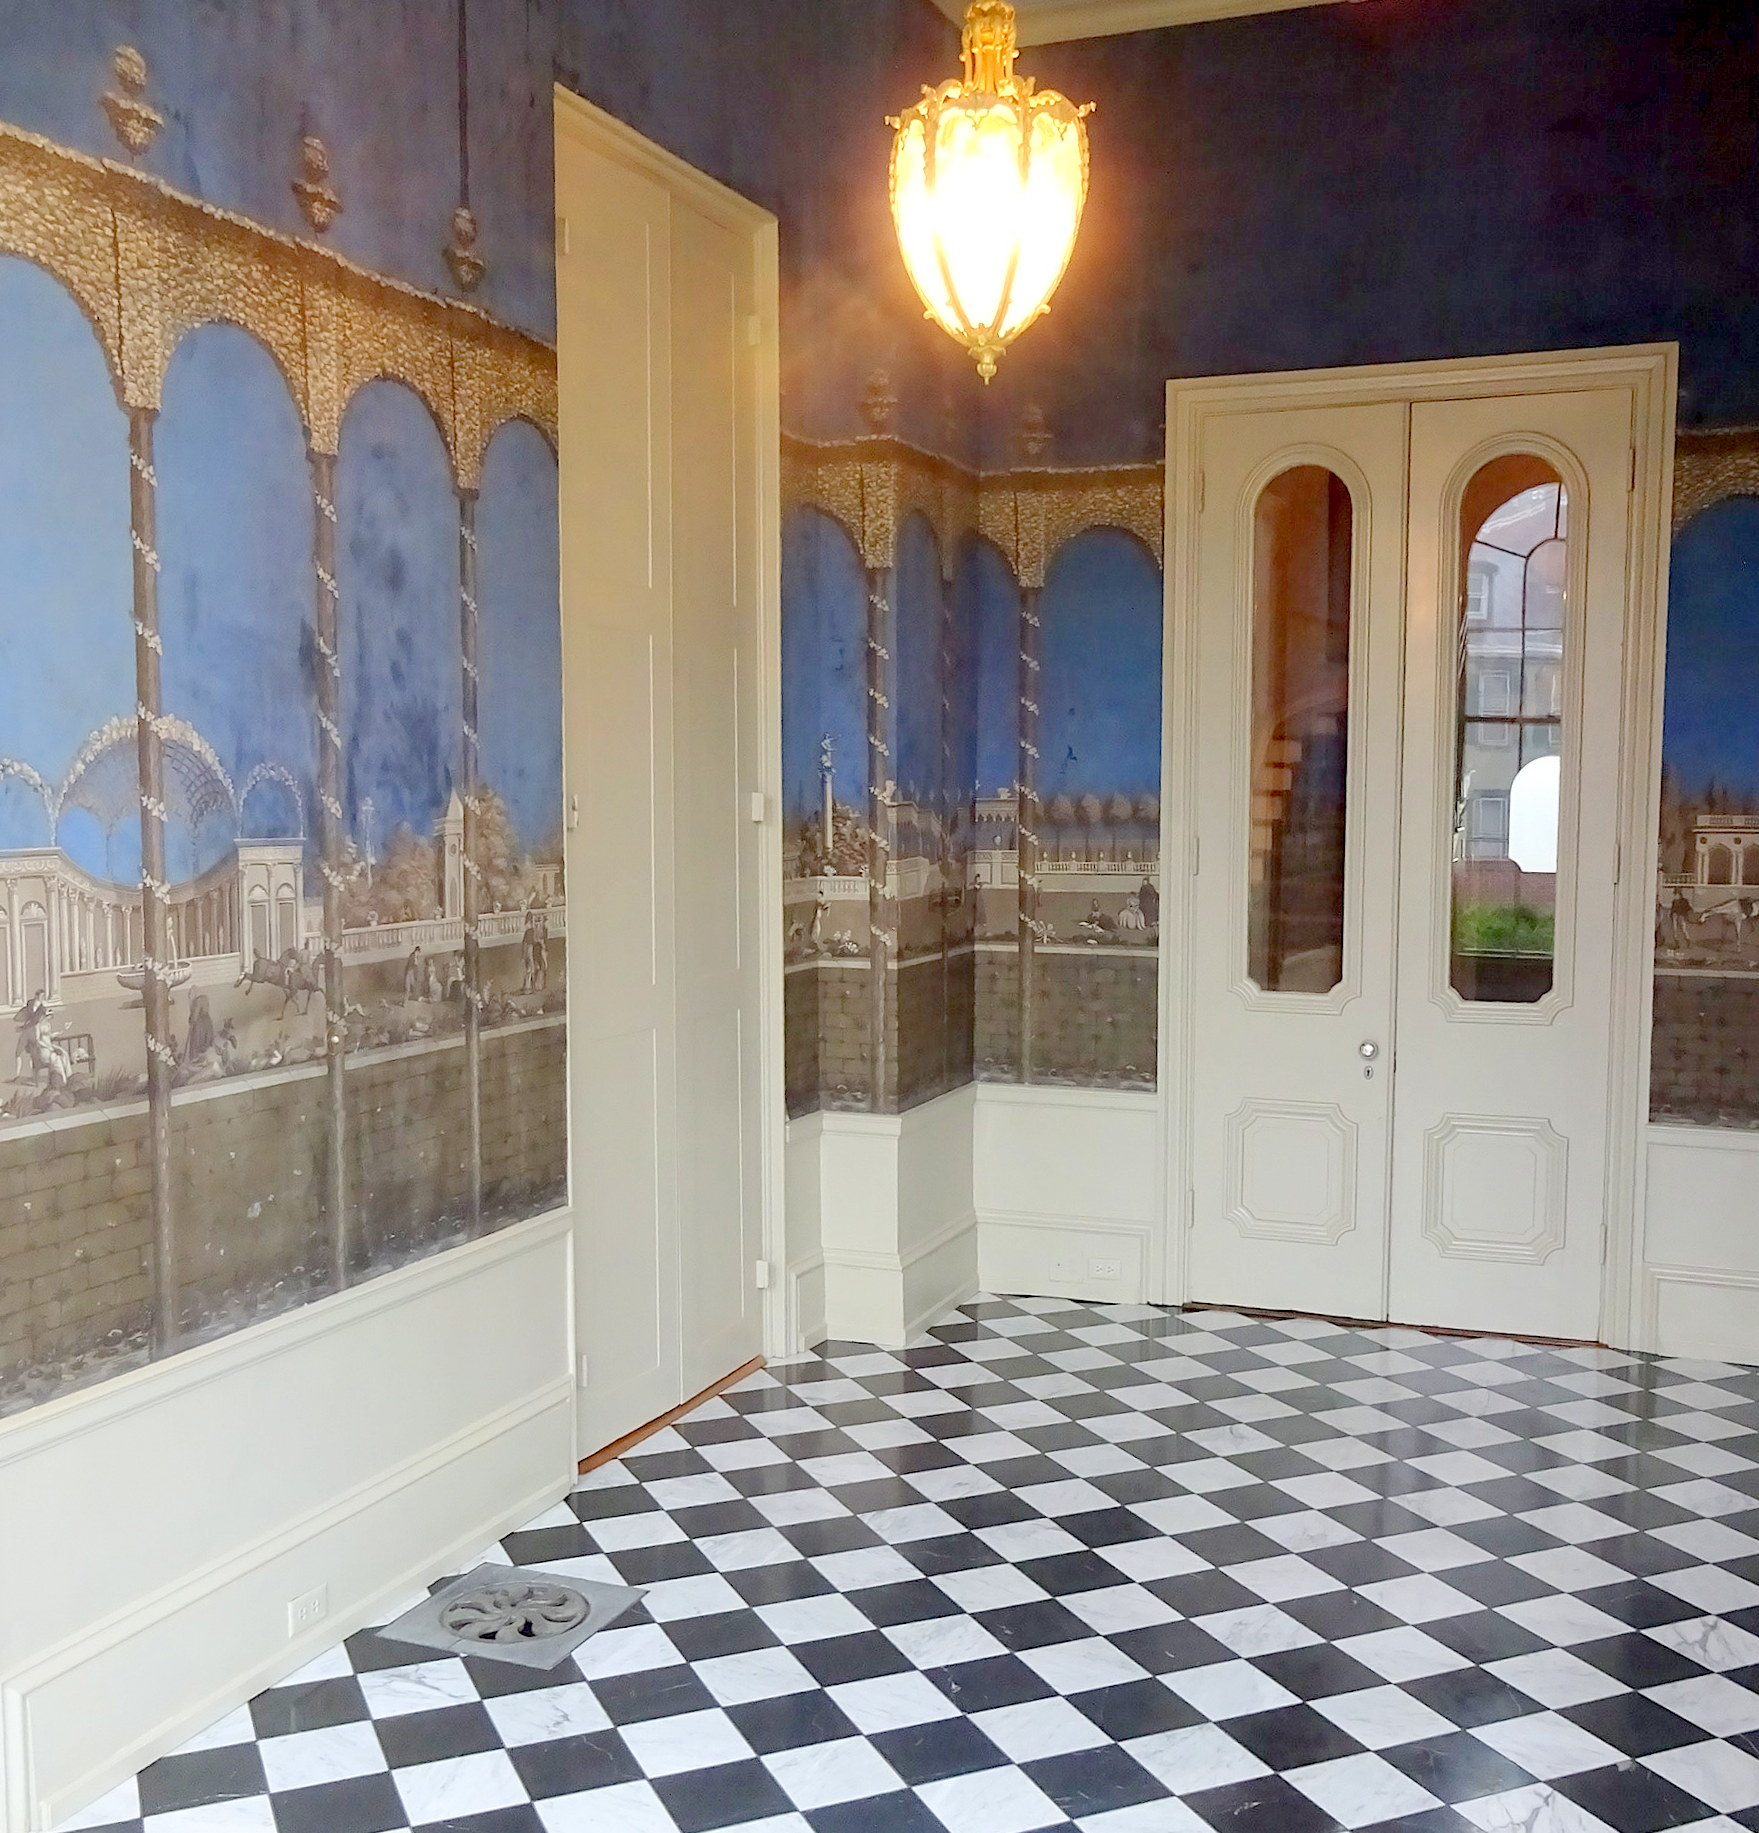 The Cameron Solariium with its unrestored19th century wallpaper.